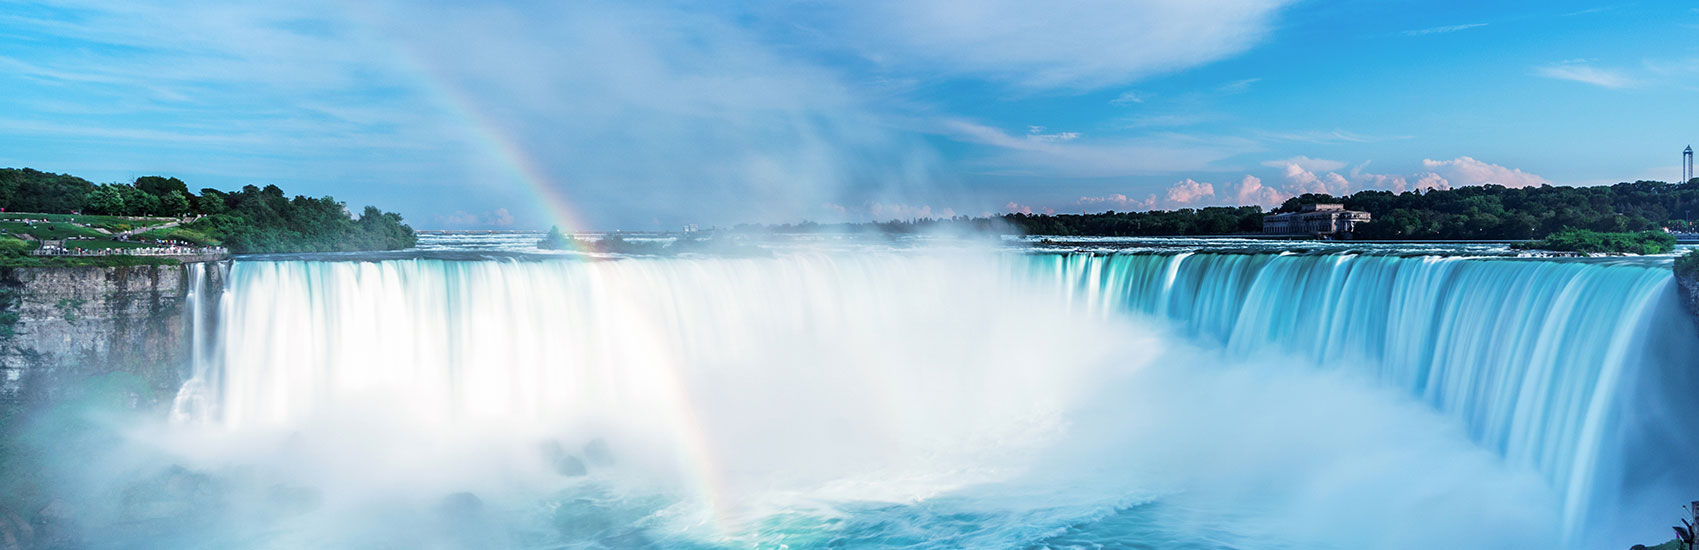 Discover Canada with Insight Vacations 2